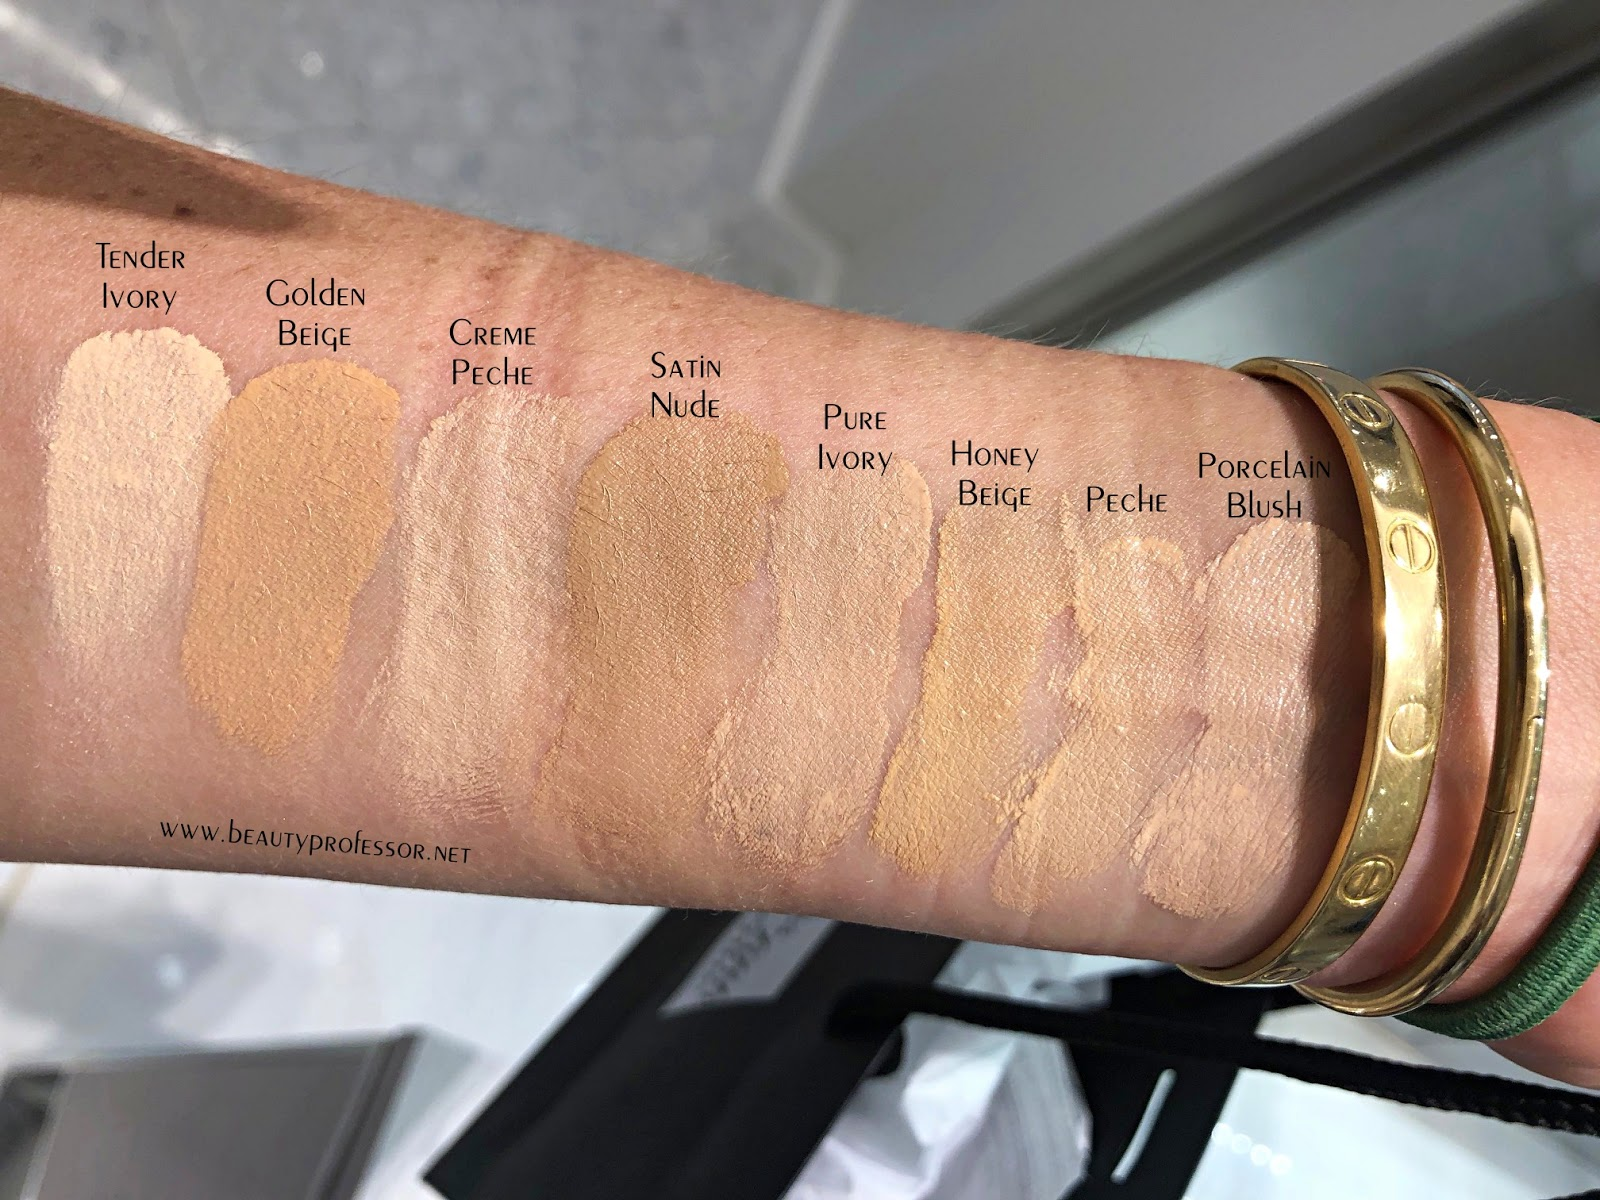 la prairie essence-in-foundation swatches